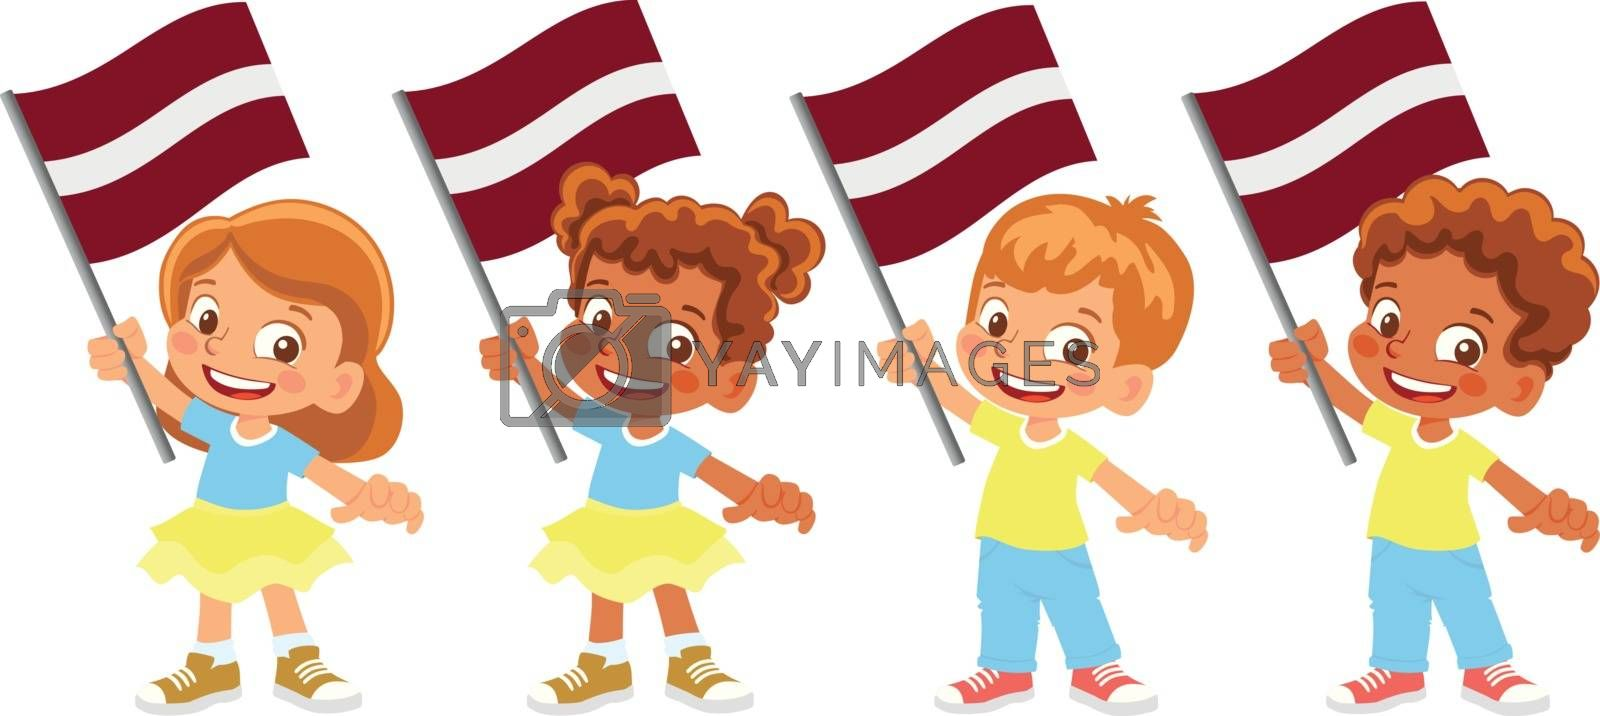 Royalty free image of latvia flag in hand set by Visual-Content